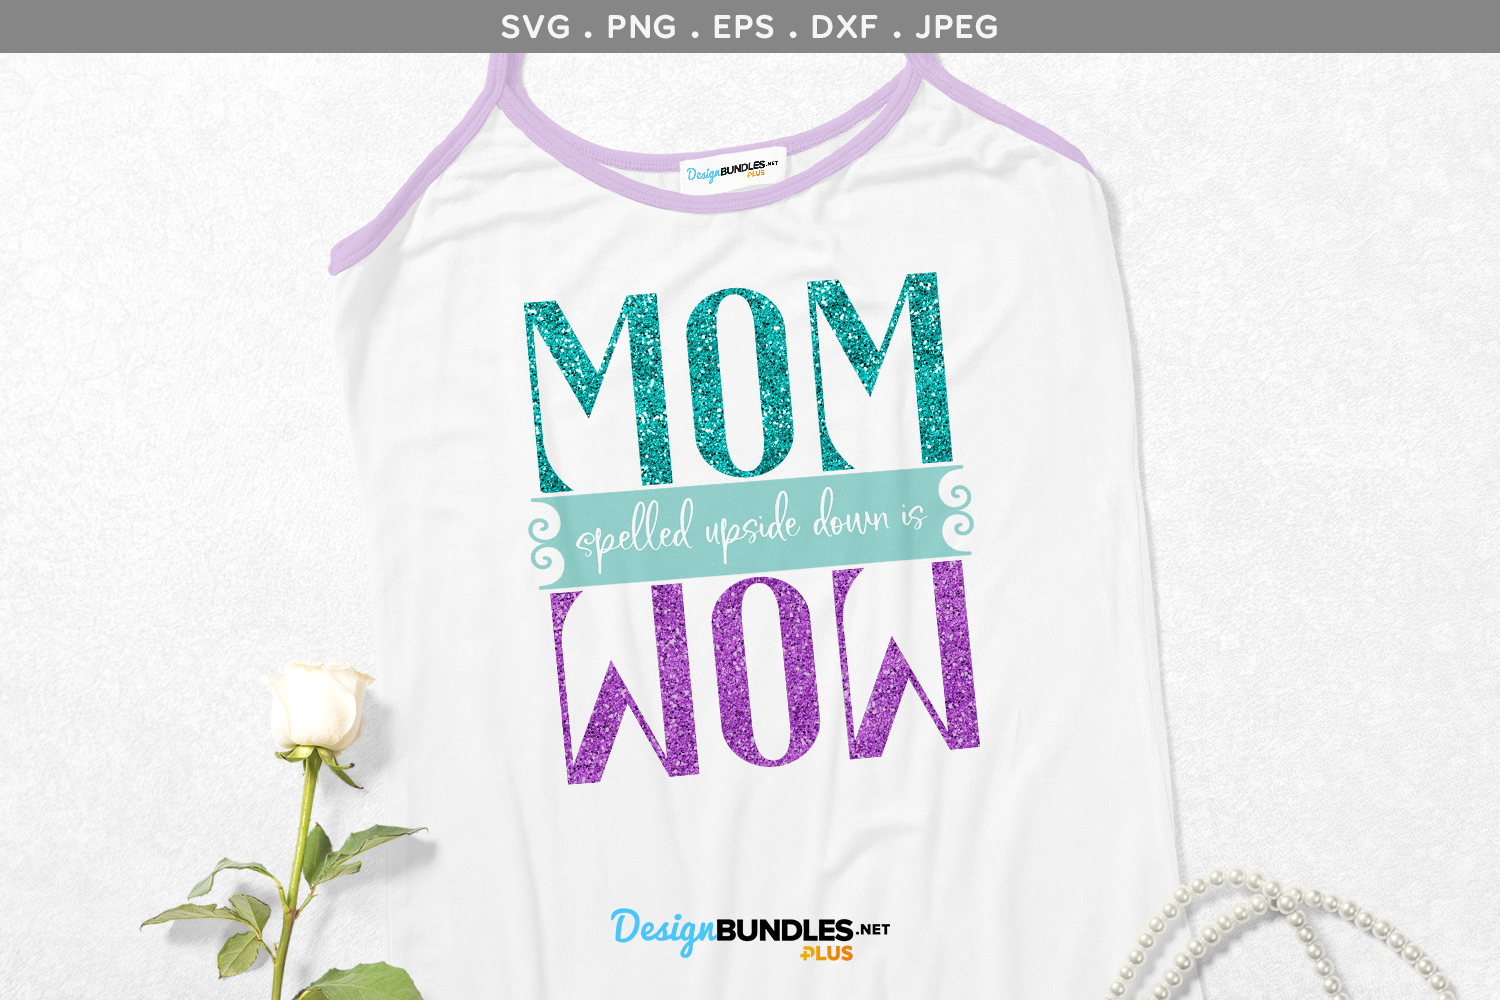 Mom spelled upside down is Wow - svg & printable example image 1